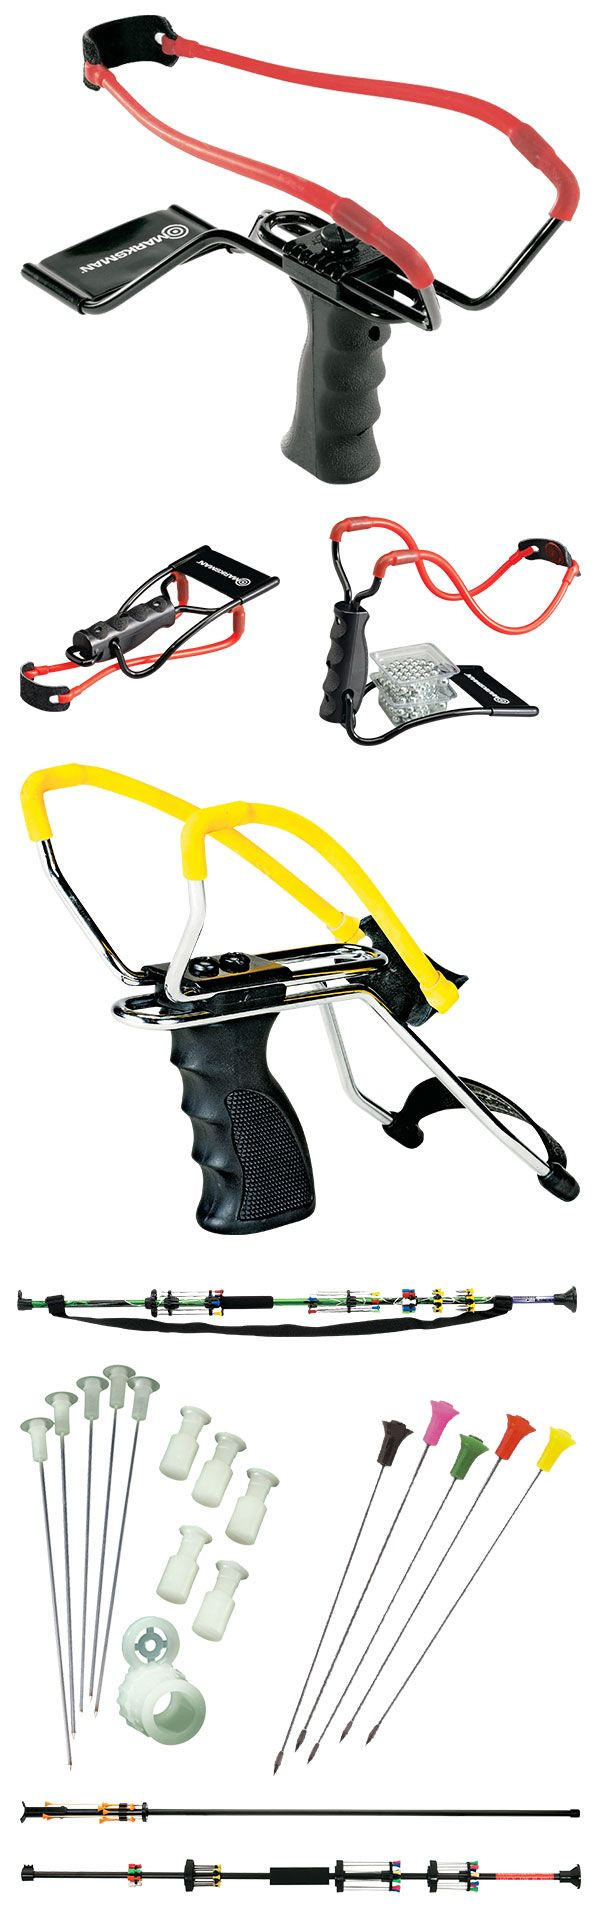 32 best blowgun images on pinterest crossbow darts and archery